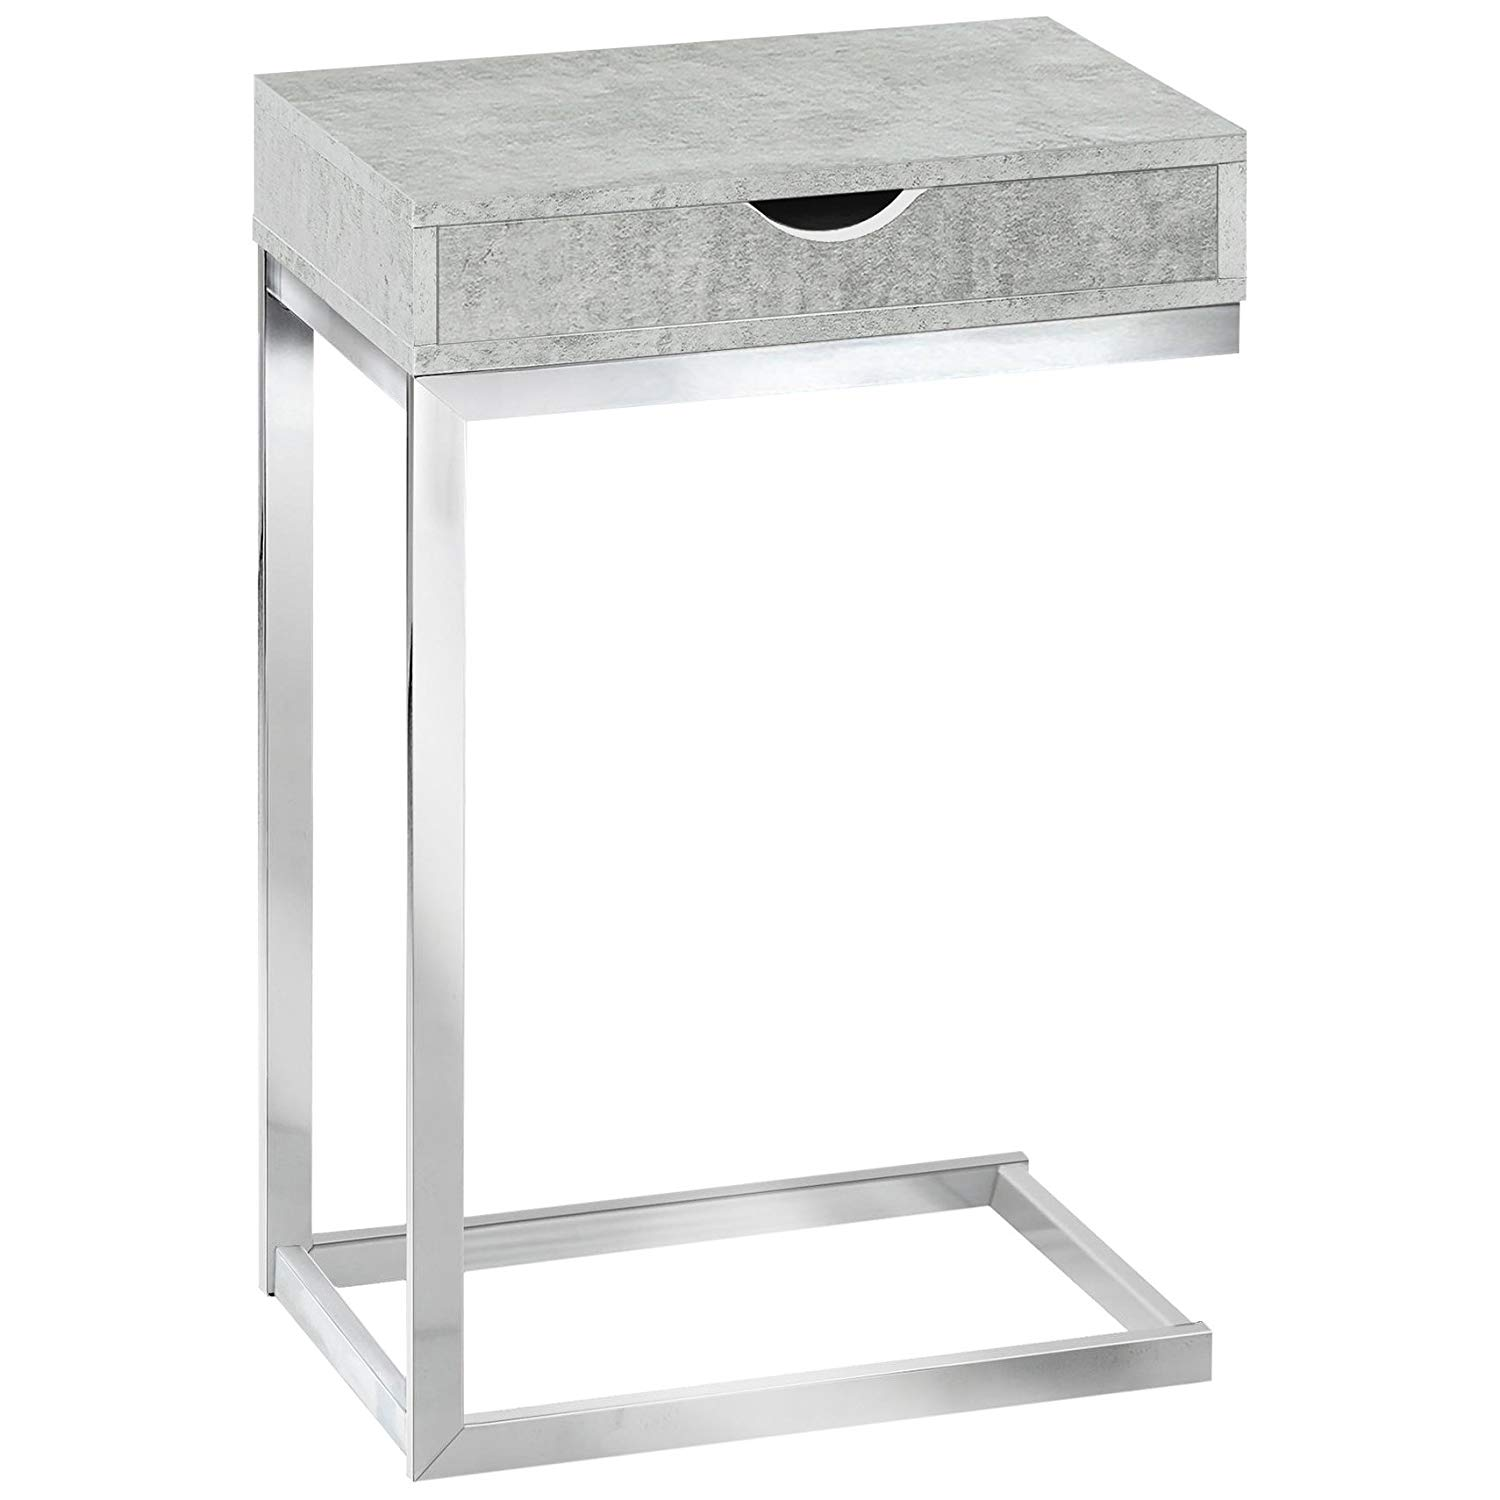 monarch specialties accent table with drawer grey chrome metal dark cement kitchen dining faux marble end balcony and chairs ikea storage shelves hallway chest furniture double